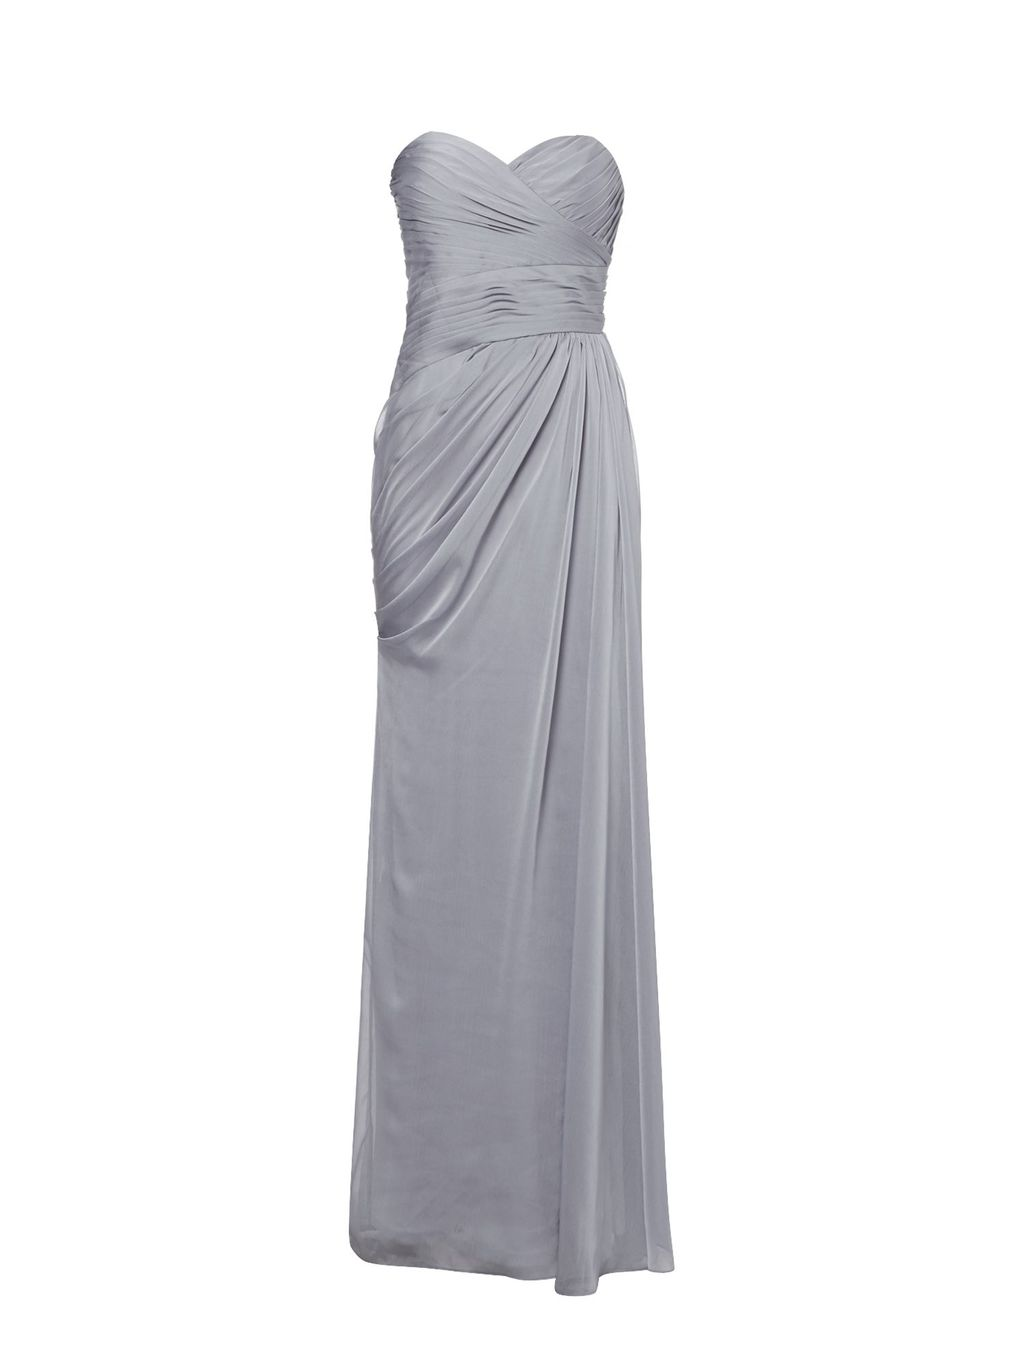 Strapless Chiffon Gown, Mauve - style: ballgown; neckline: strapless (straight/sweetheart); pattern: plain; sleeve style: strapless; predominant colour: silver; occasions: evening; length: floor length; fit: body skimming; fibres: polyester/polyamide - 100%; sleeve length: sleeveless; texture group: sheer fabrics/chiffon/organza etc.; pattern type: fabric; season: s/s 2016; wardrobe: event